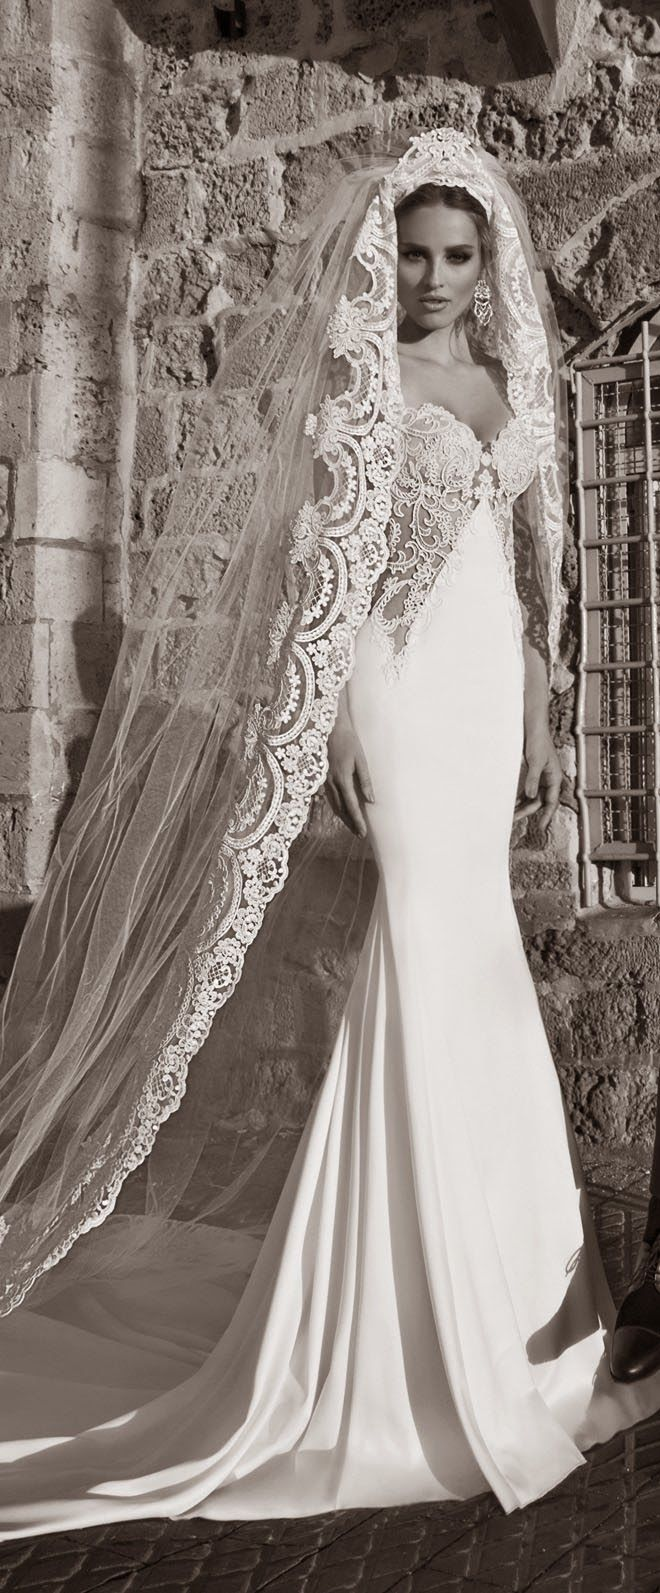 Best of galia lahav wedding dresses galia lahav wedding dress and